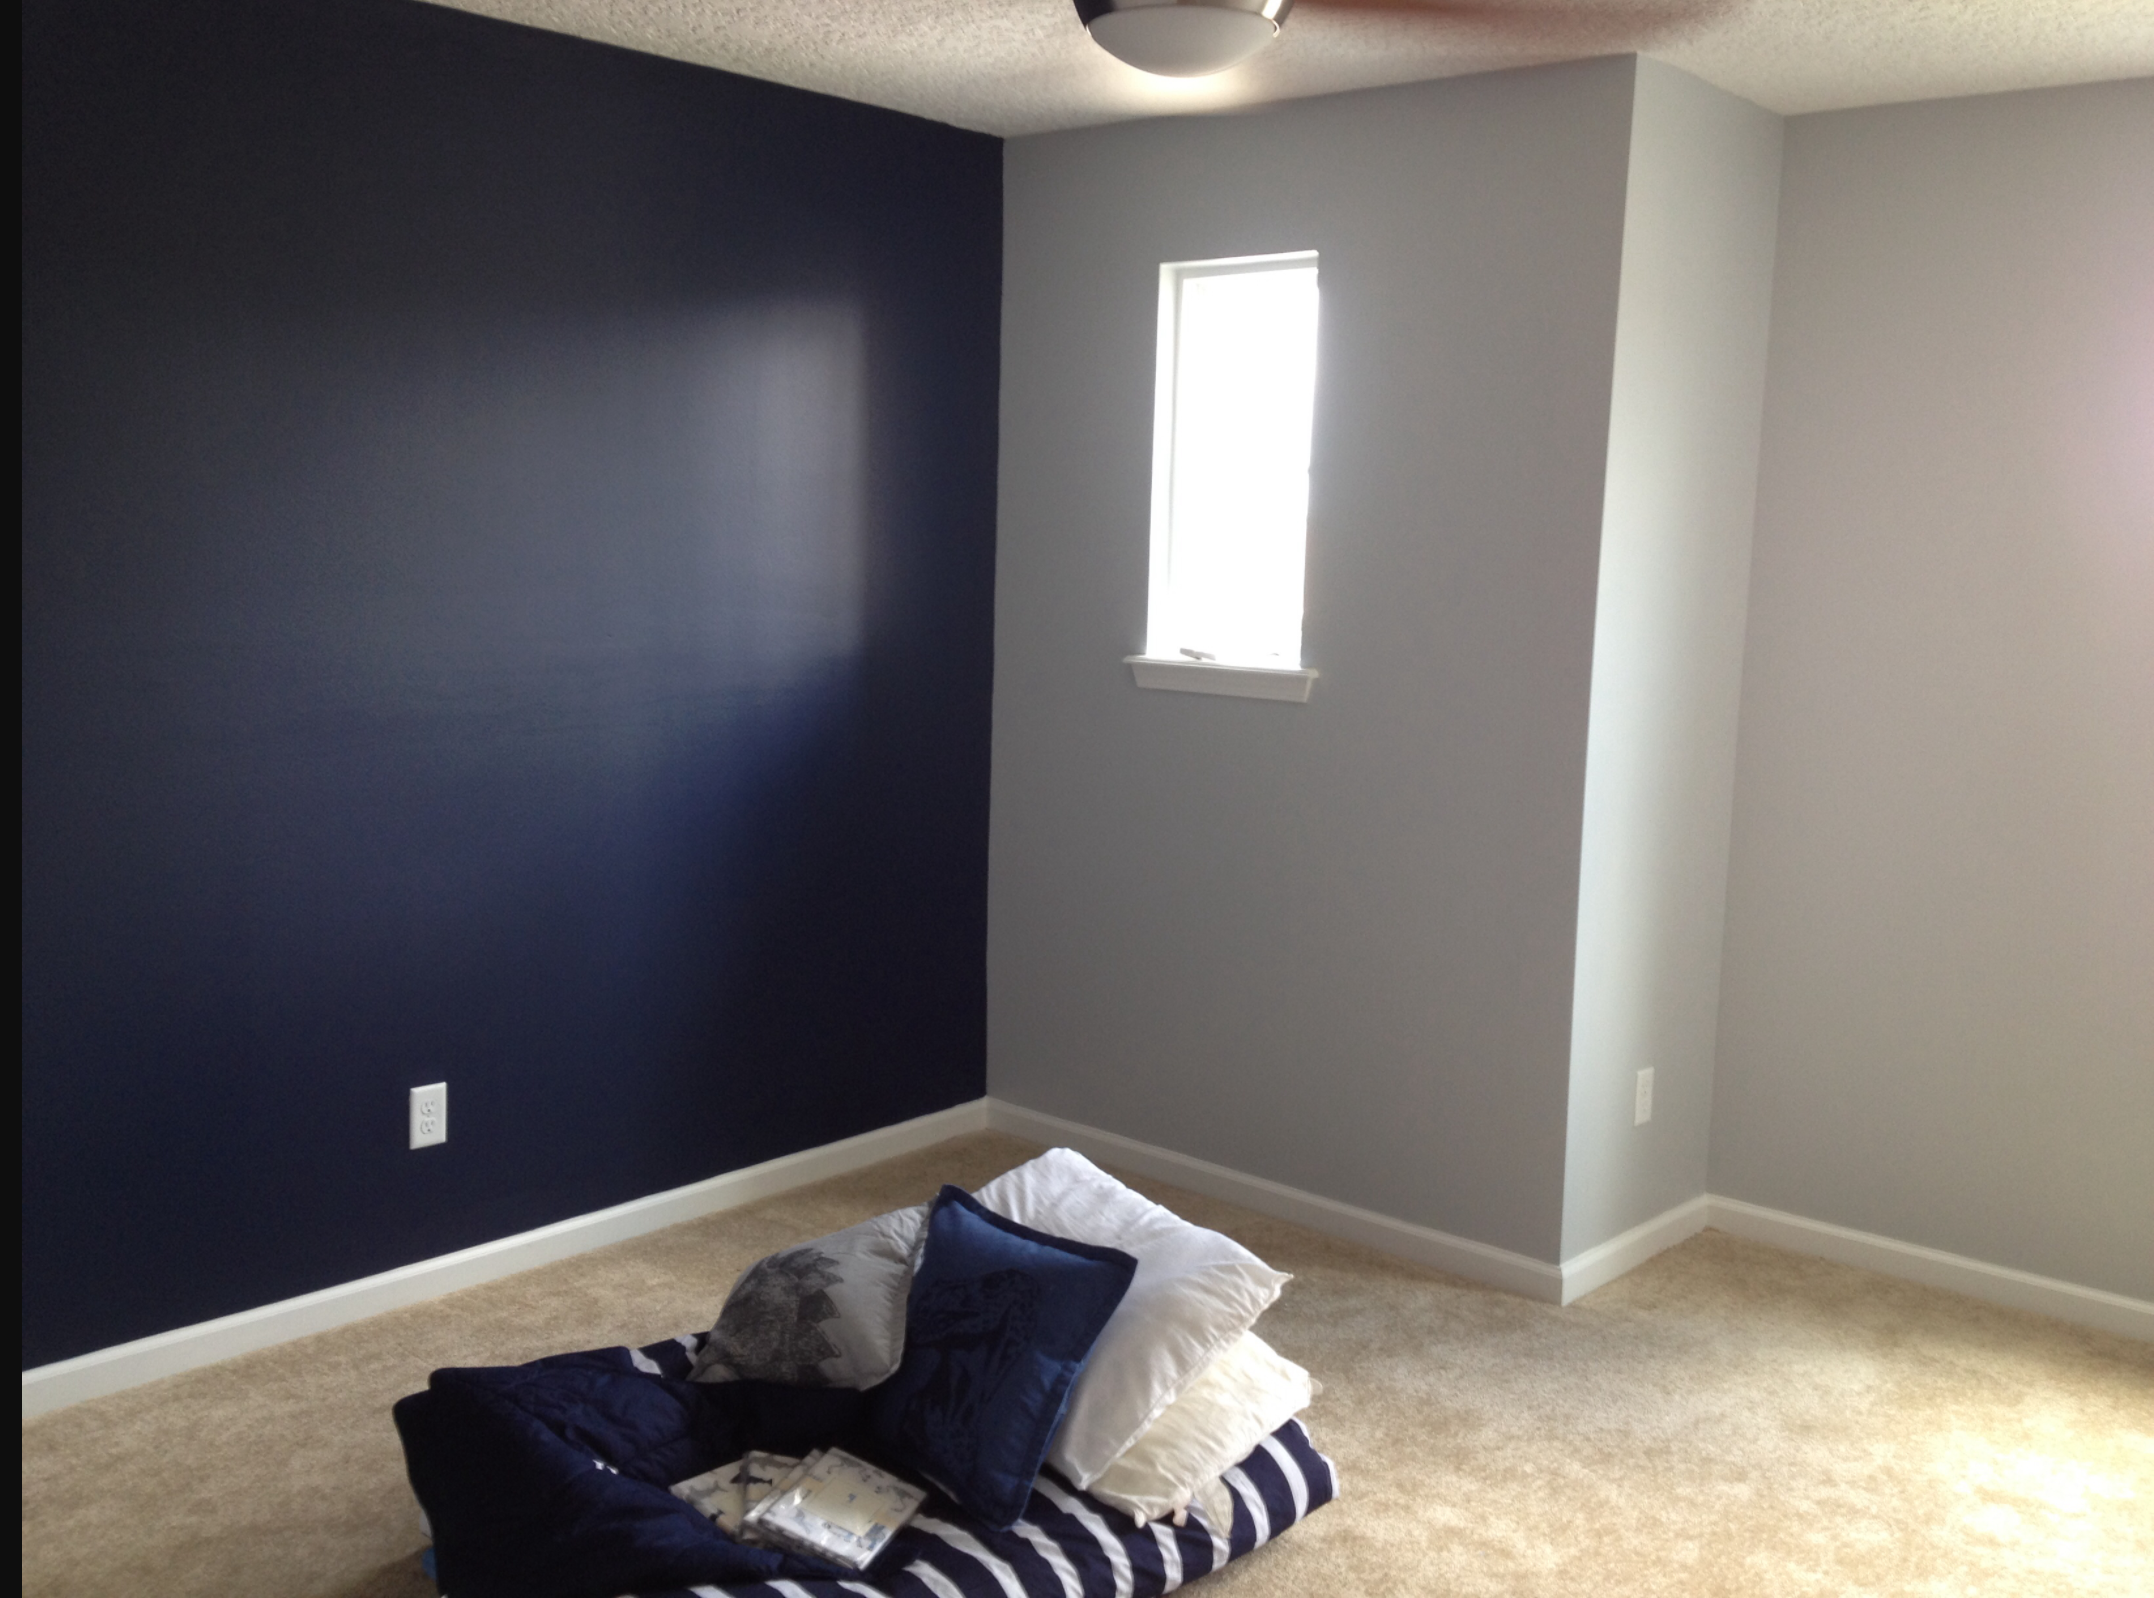 Color is from sherwin williams gray screen